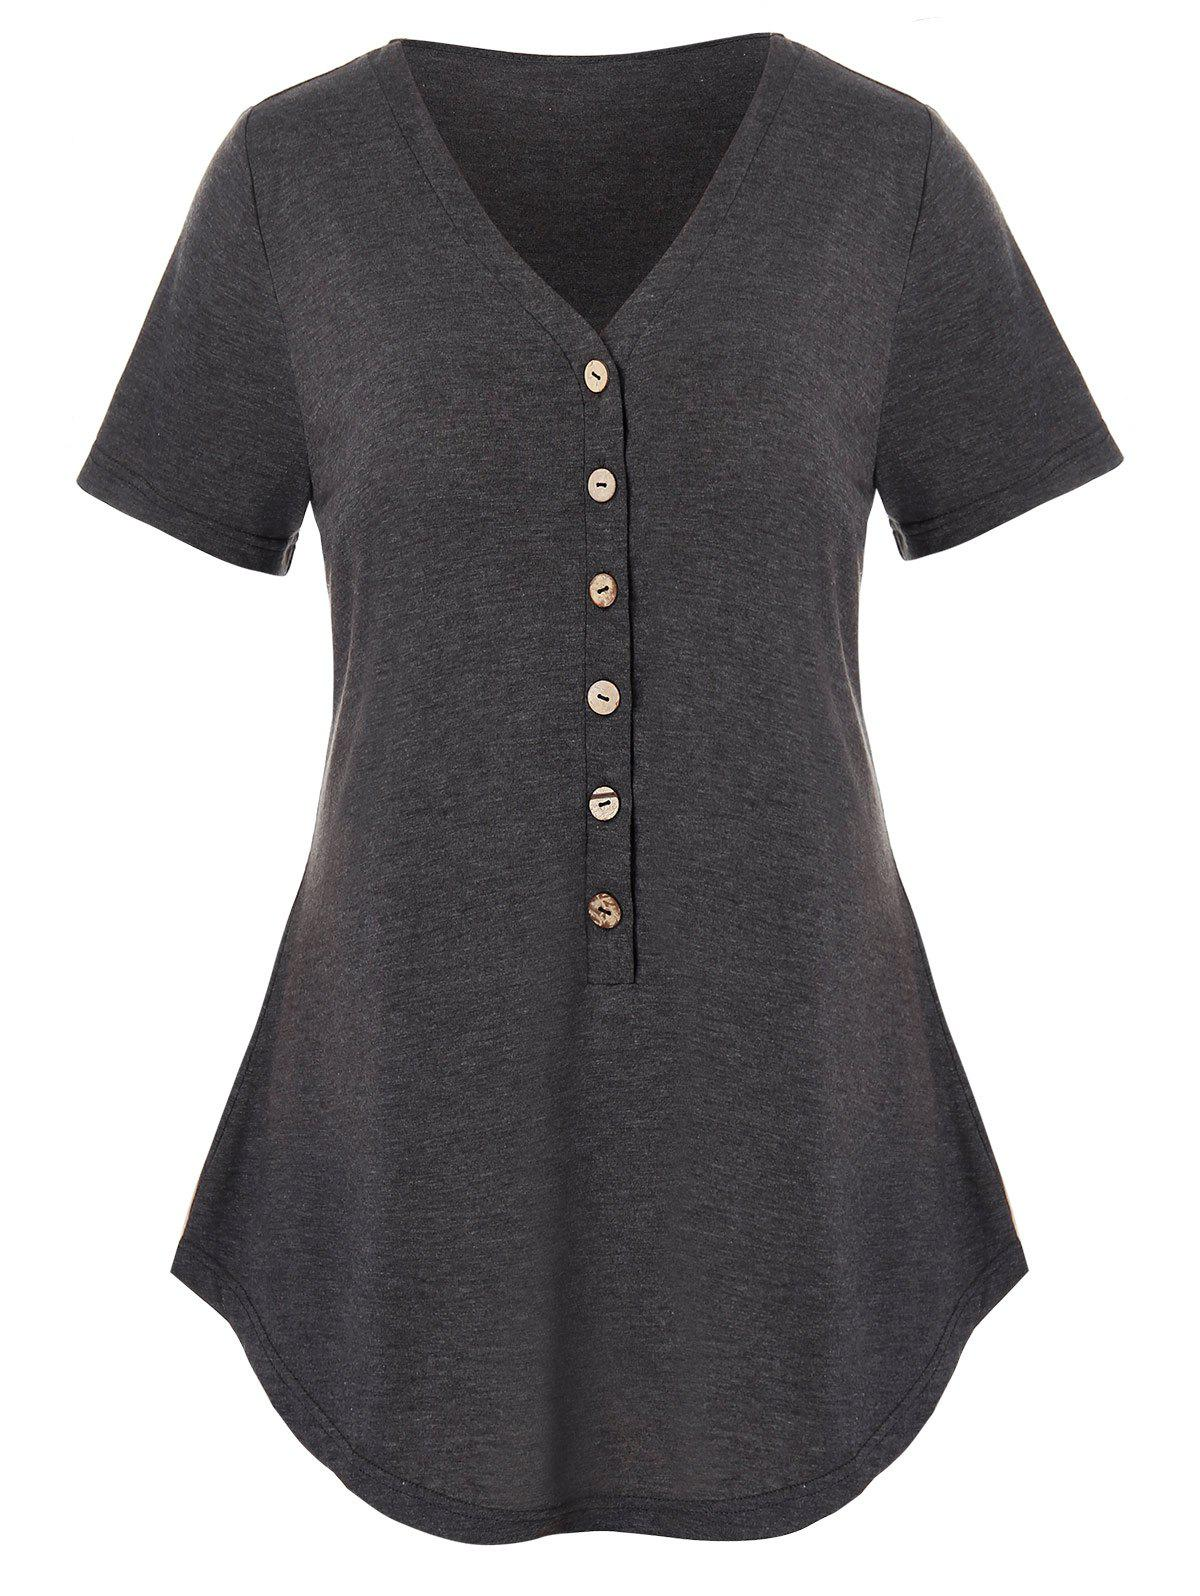 Plus Size Half Button Curved T Shirt - CARBON GRAY 2X